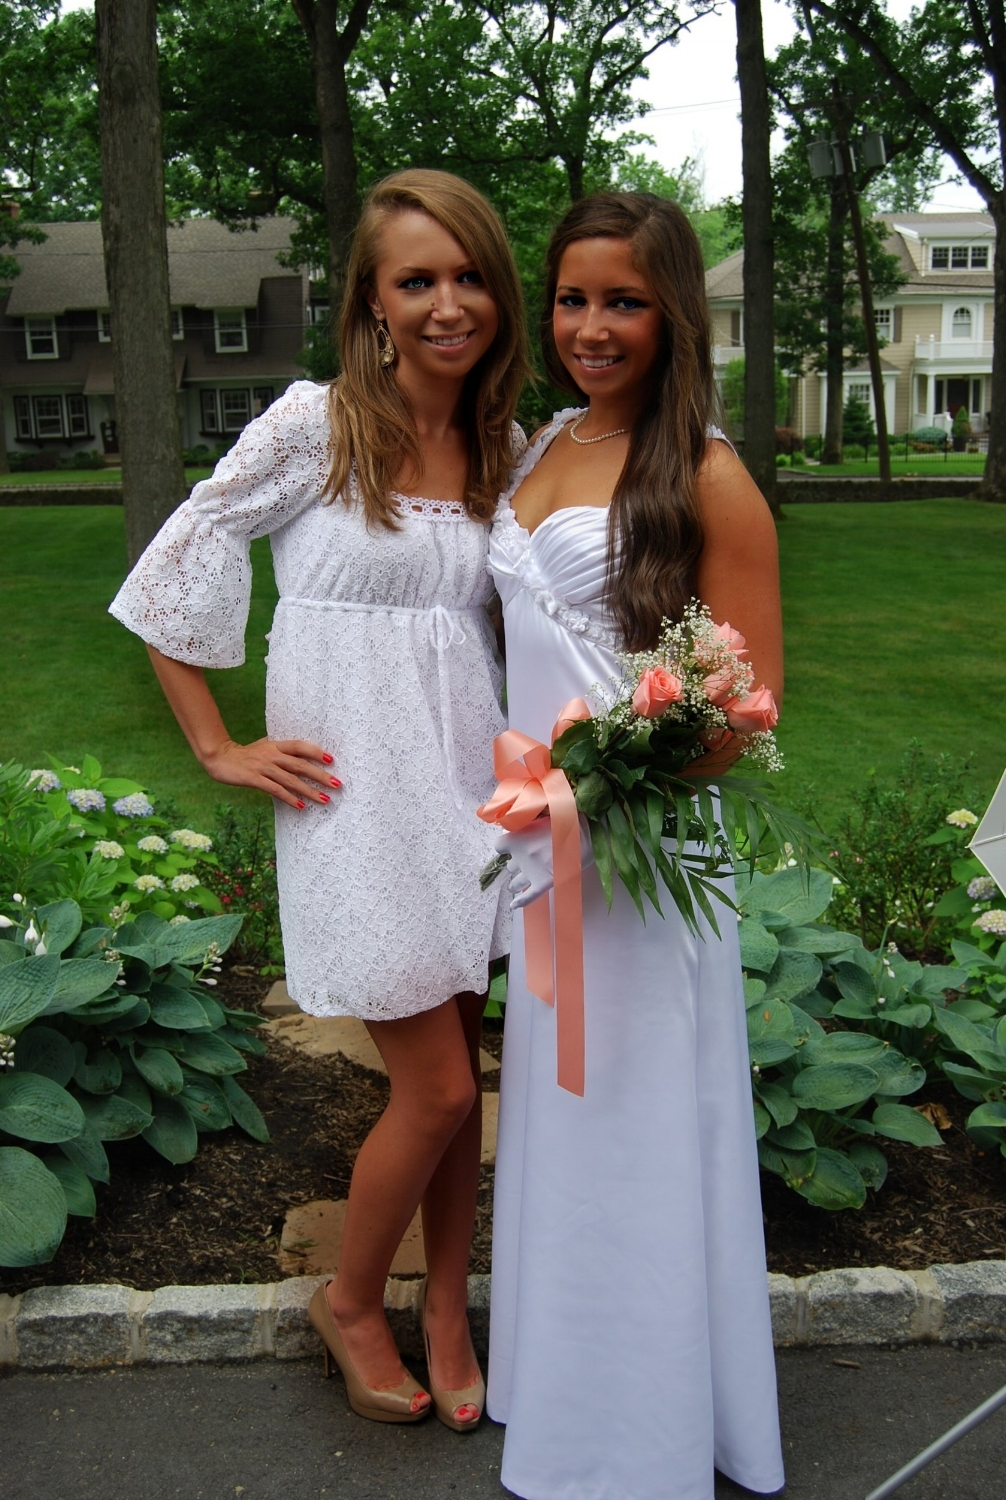 Brielle graduated from Oak Knoll School in 2007 and Aubrey followed in June of 2011. I had the pleasure of designing white graduation gowns for both Brielle and Aubrey.